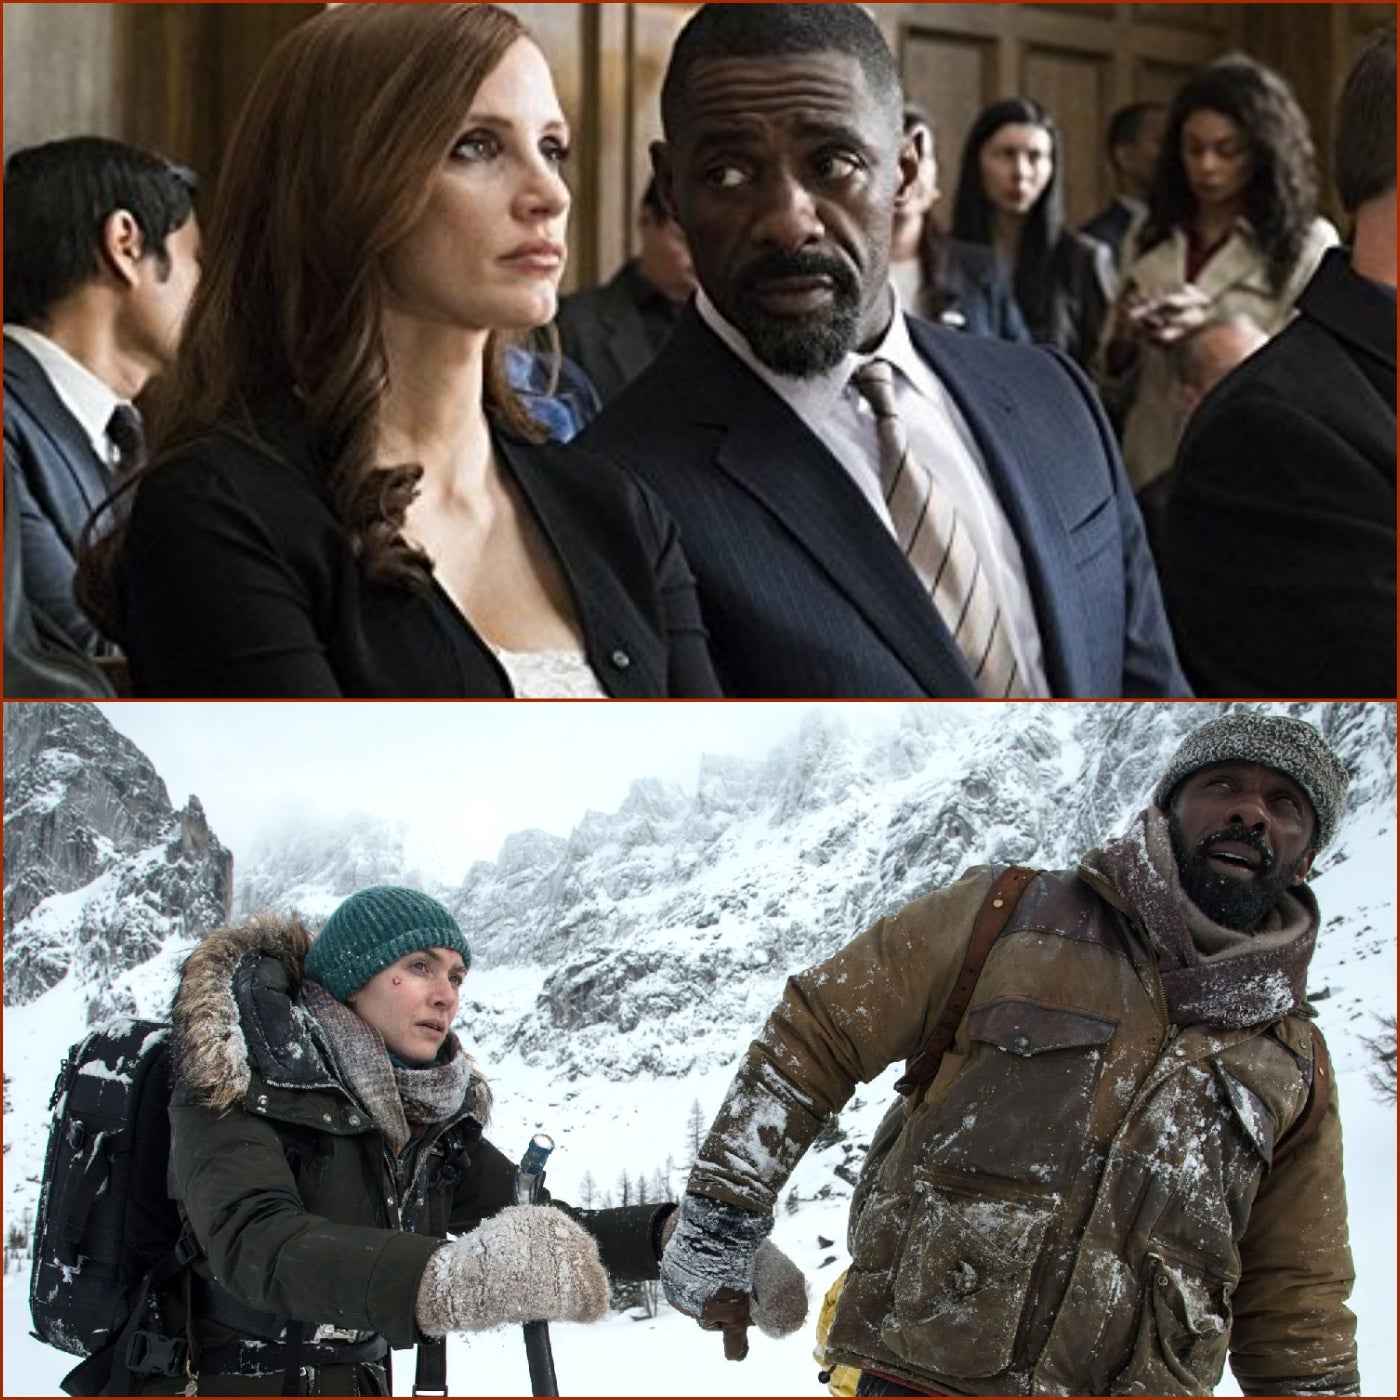 Scenes from The Mountain Between Us and Molly's Game